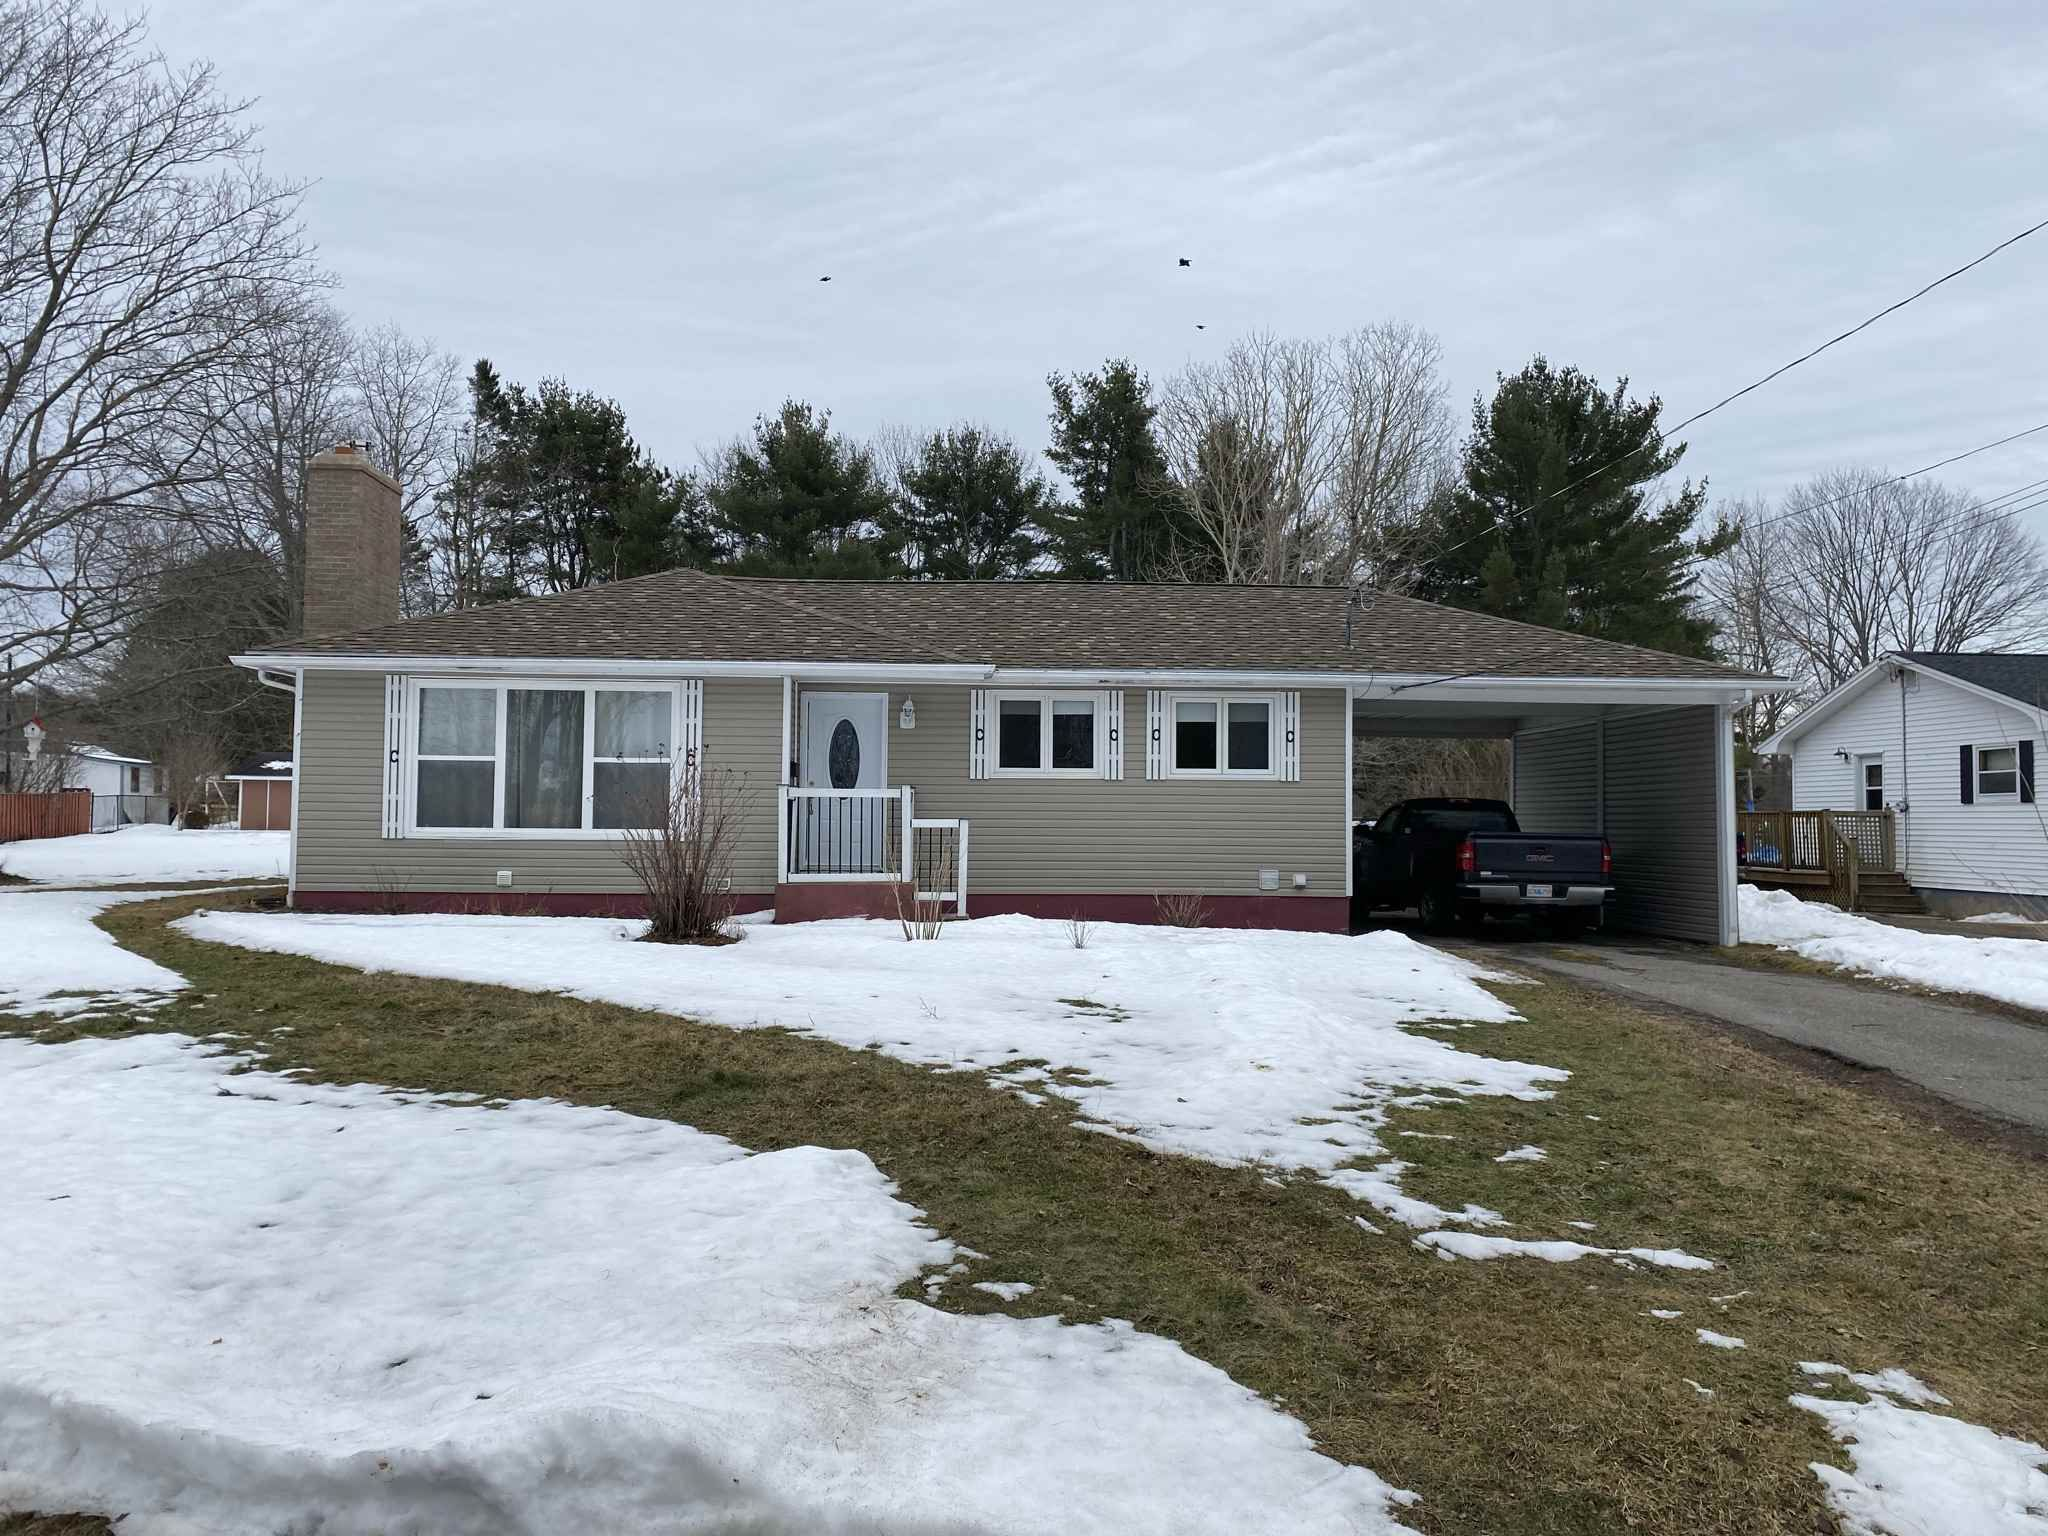 Main Photo: 983 Scott Drive in North Kentville: 404-Kings County Residential for sale (Annapolis Valley)  : MLS®# 202103615